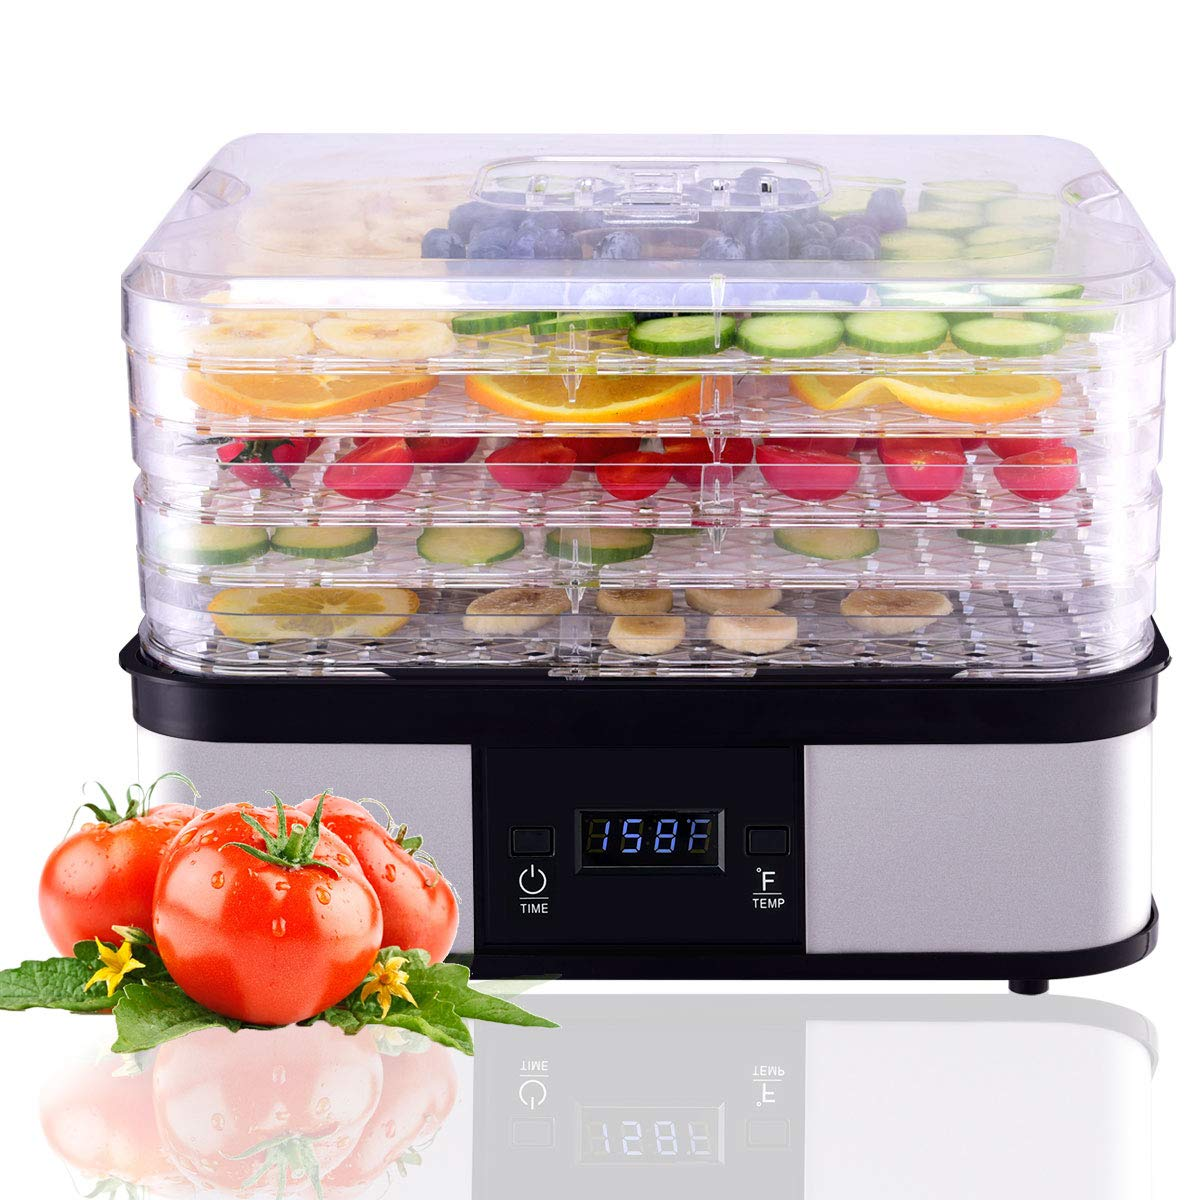 HAPPYGRILL Food Dehydrator Machine, Best Electric 5-Tier Home Food Meat Beef Jerky Fruit Vegetable Dehydrator Dryer Preserver, Professional 360 Degree Hot Air Circulation System, Easy to Clean Black